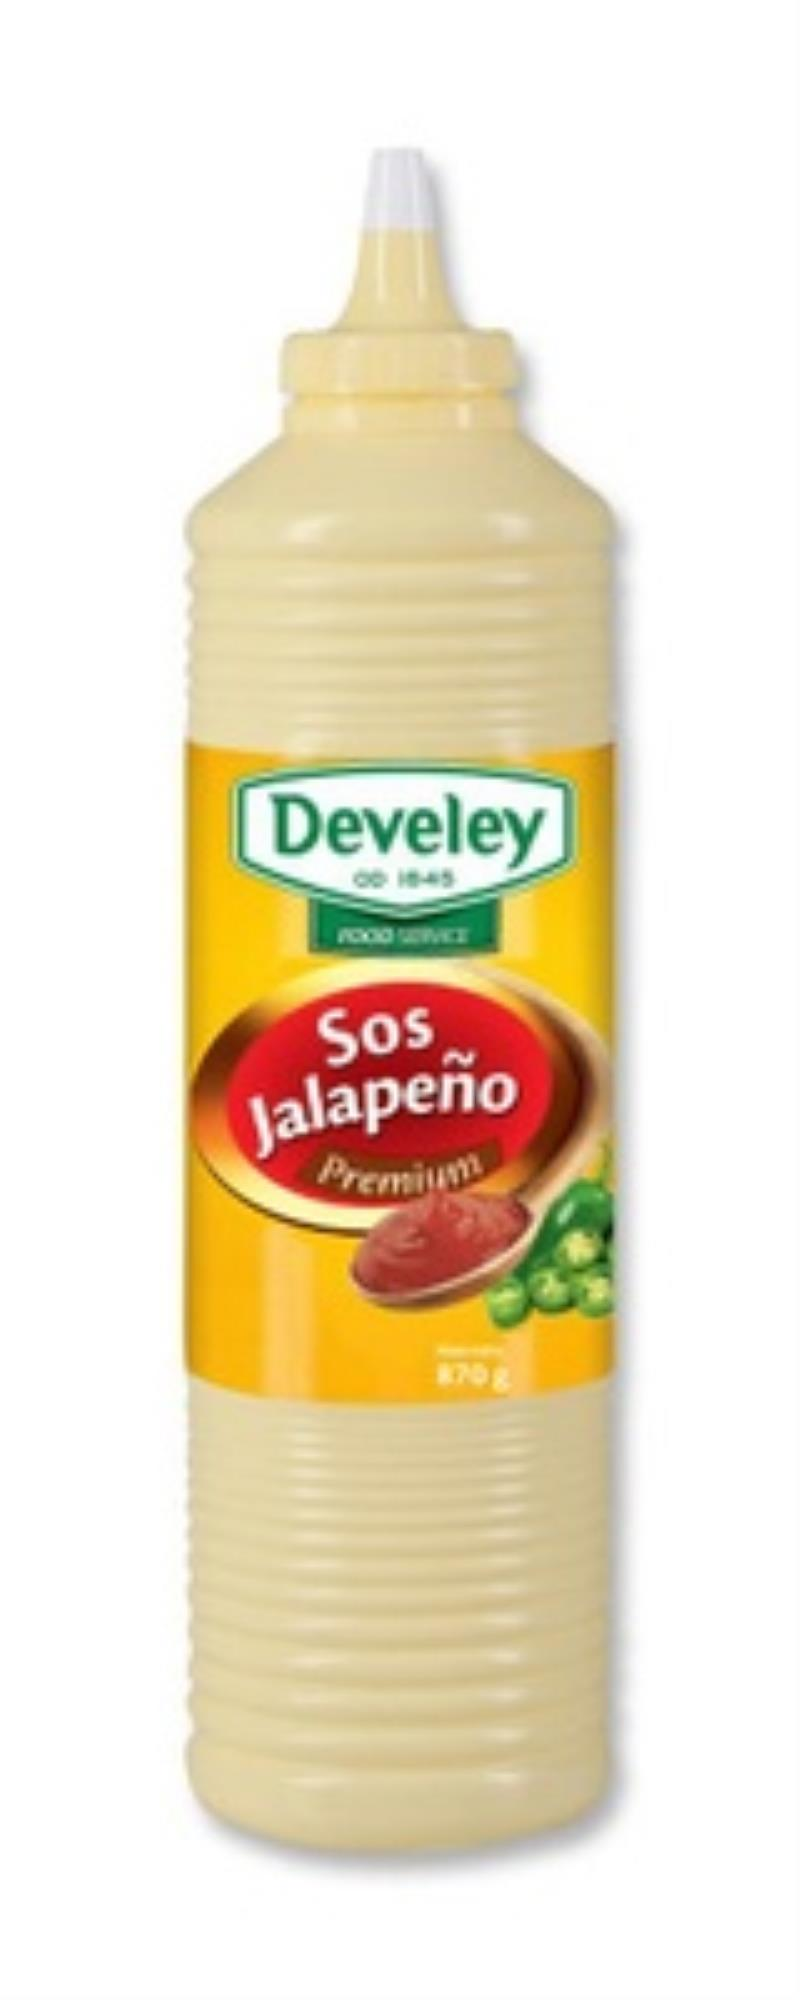 SOS JALAPENO W BUTELCE 870G